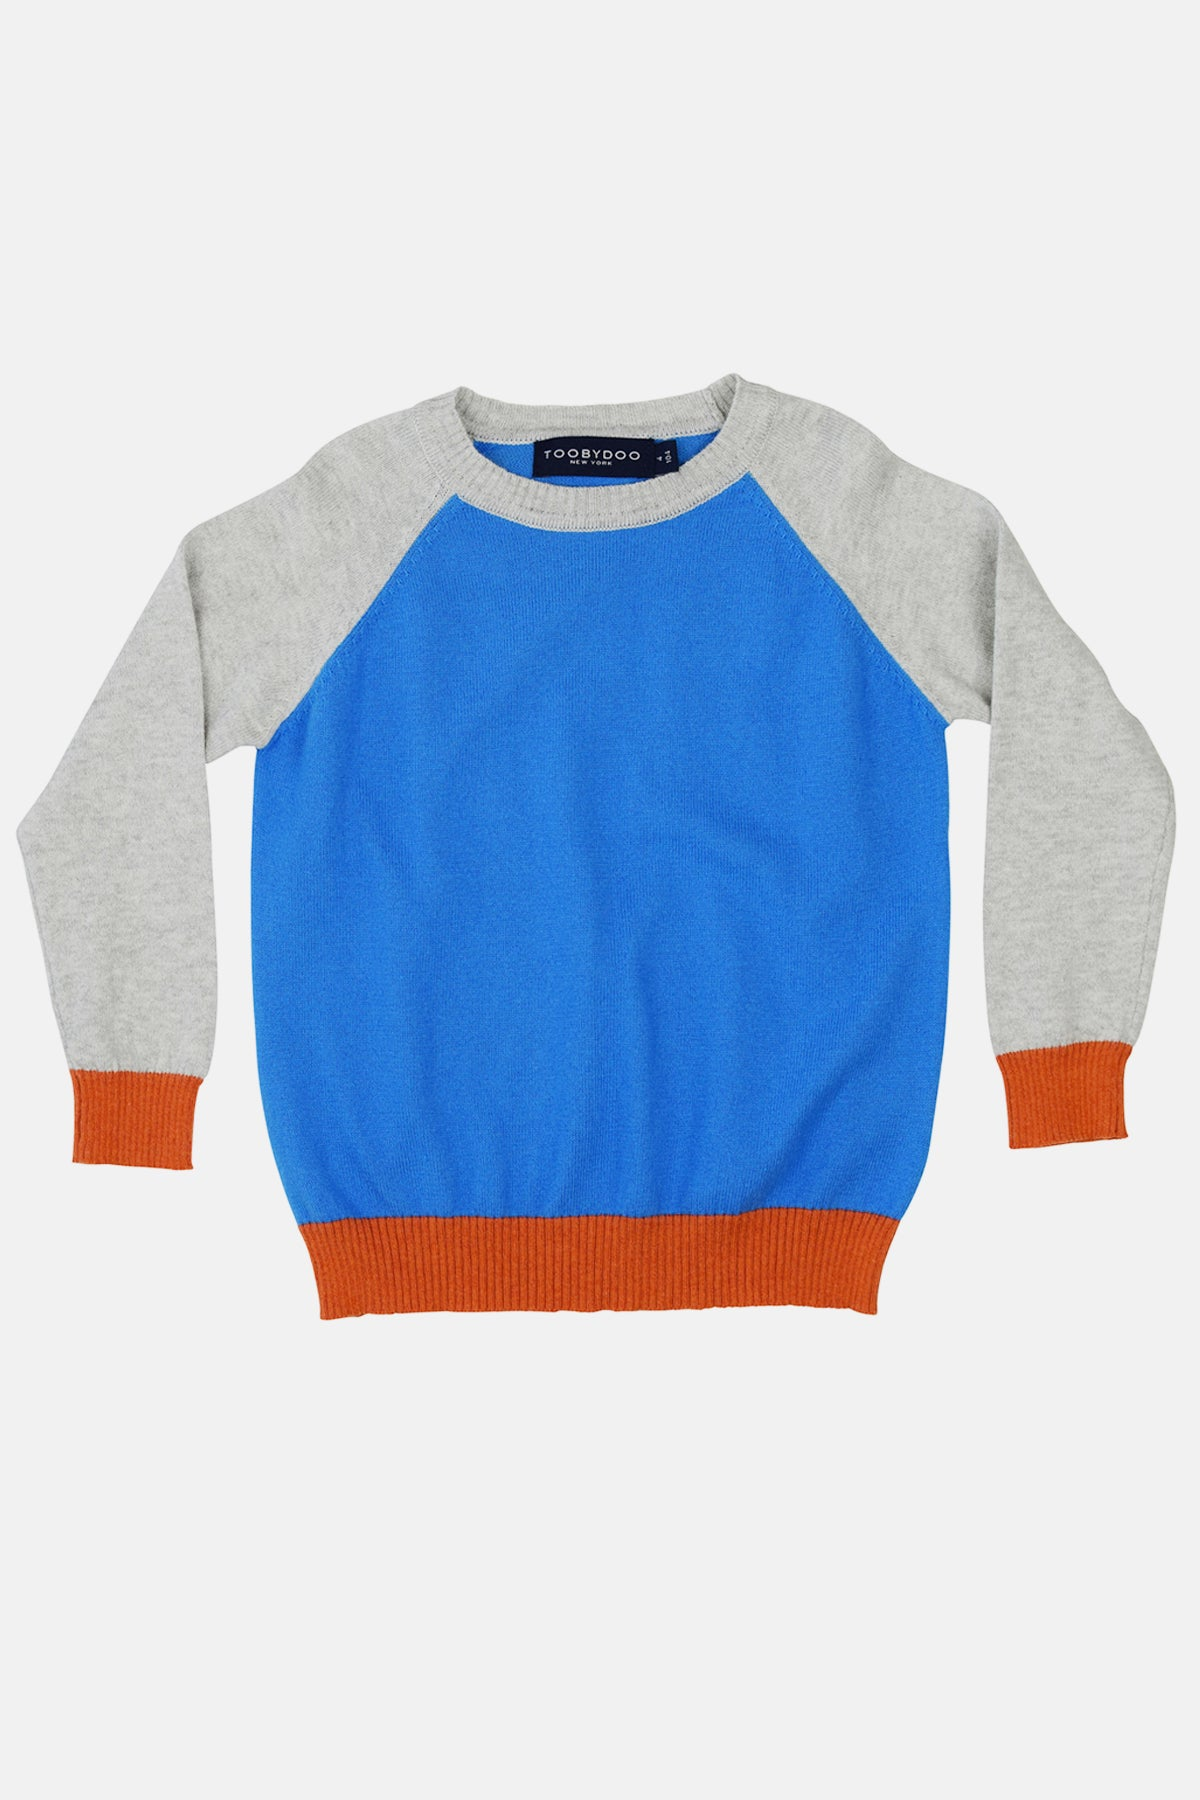 Toobydoo Boys Baseball Sweater - Blue/Grey